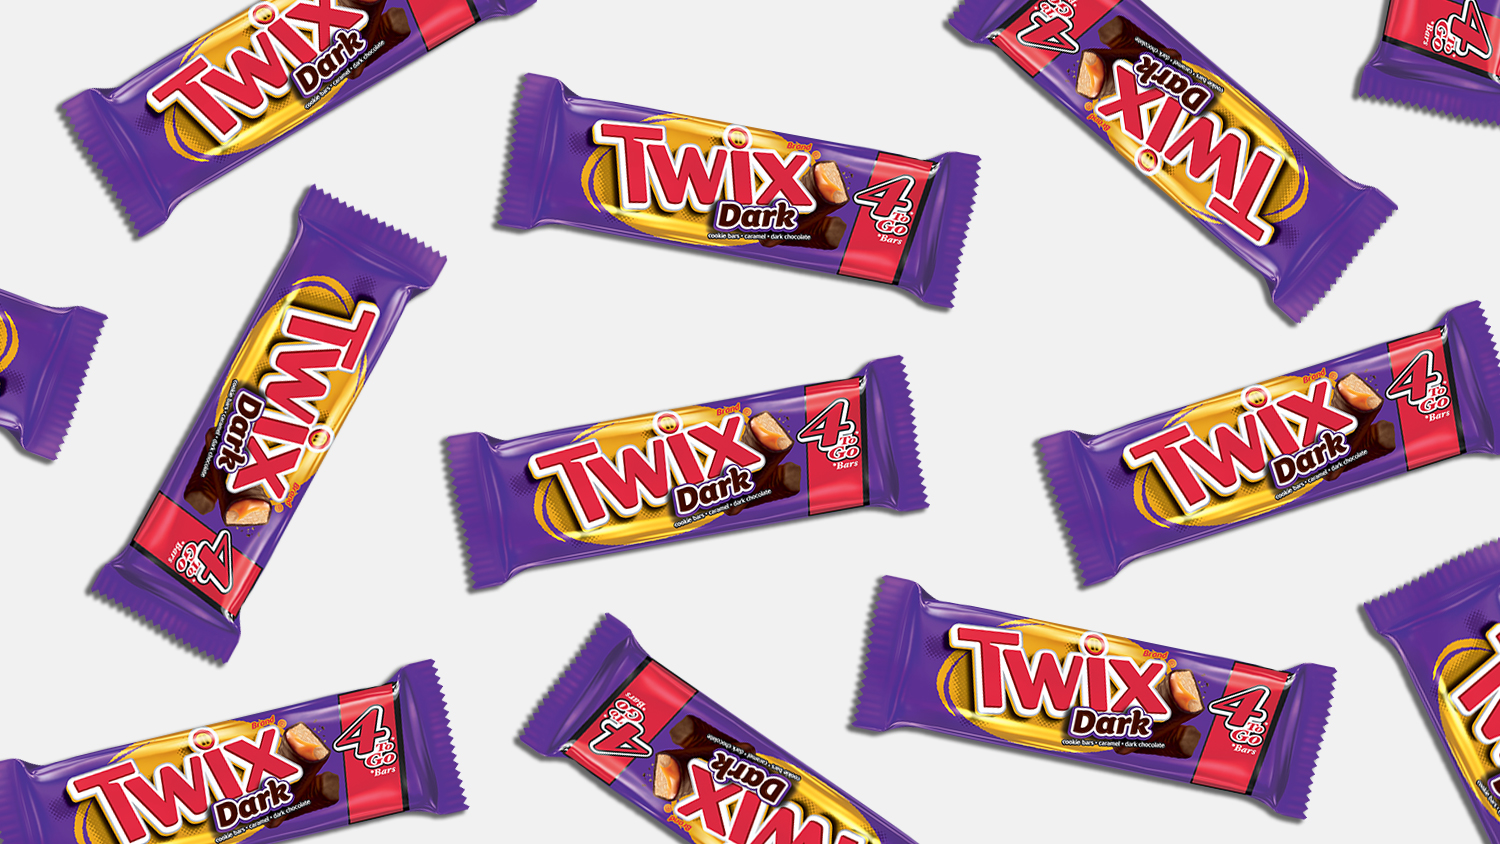 twix bars new flavors dark chocolate white chocolate and peanut butter